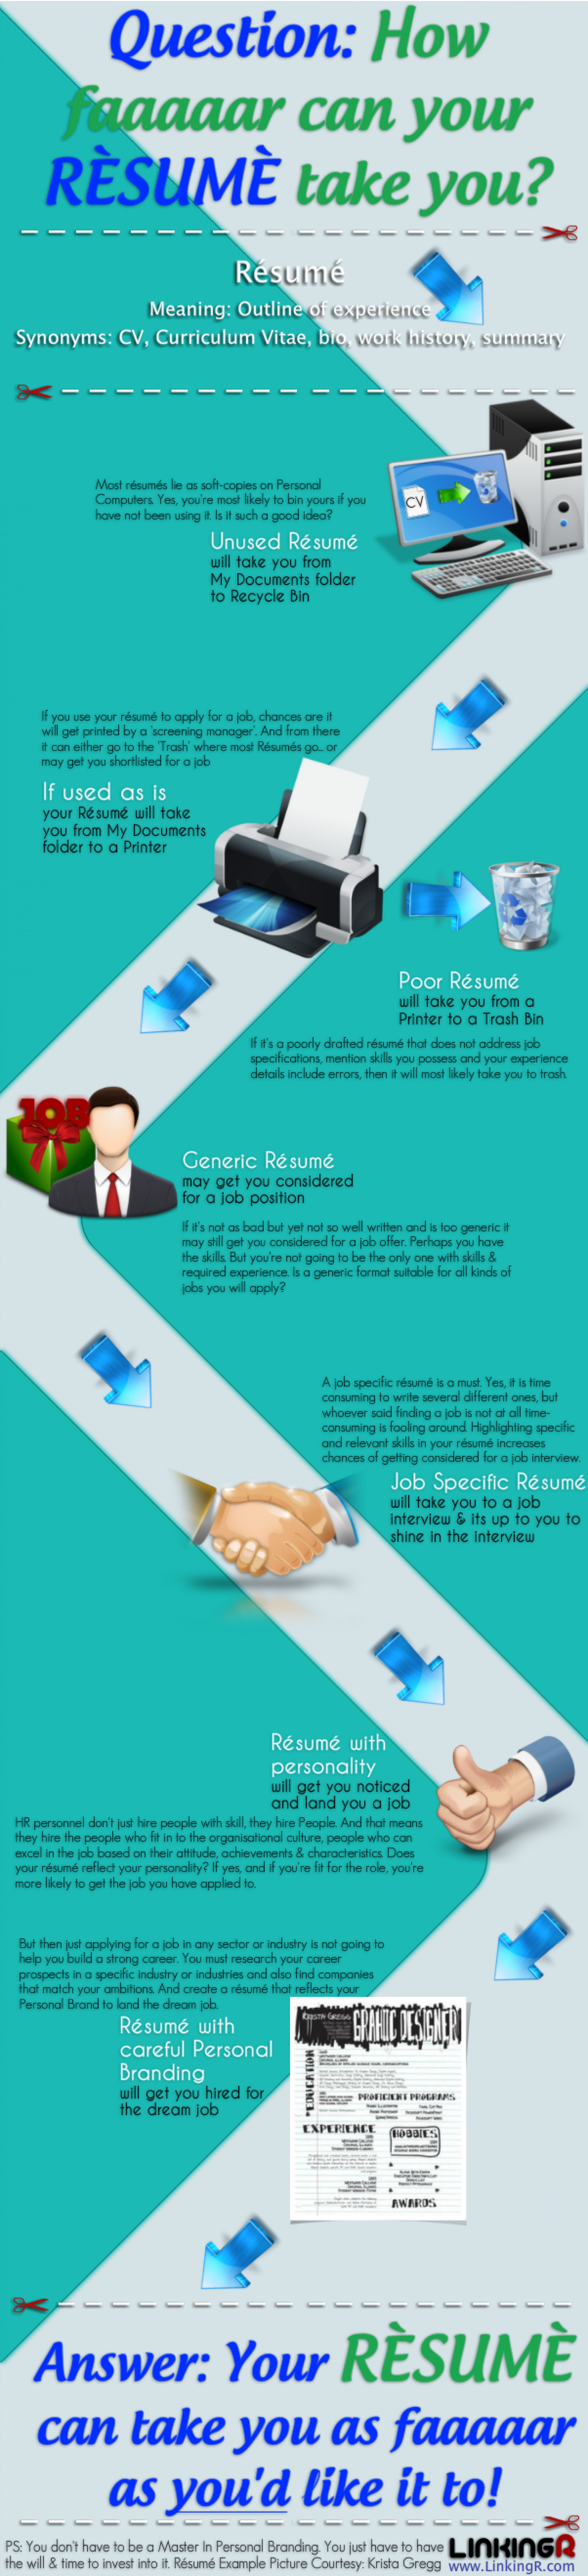 How faaaaar can your Résumé take you? Infographic